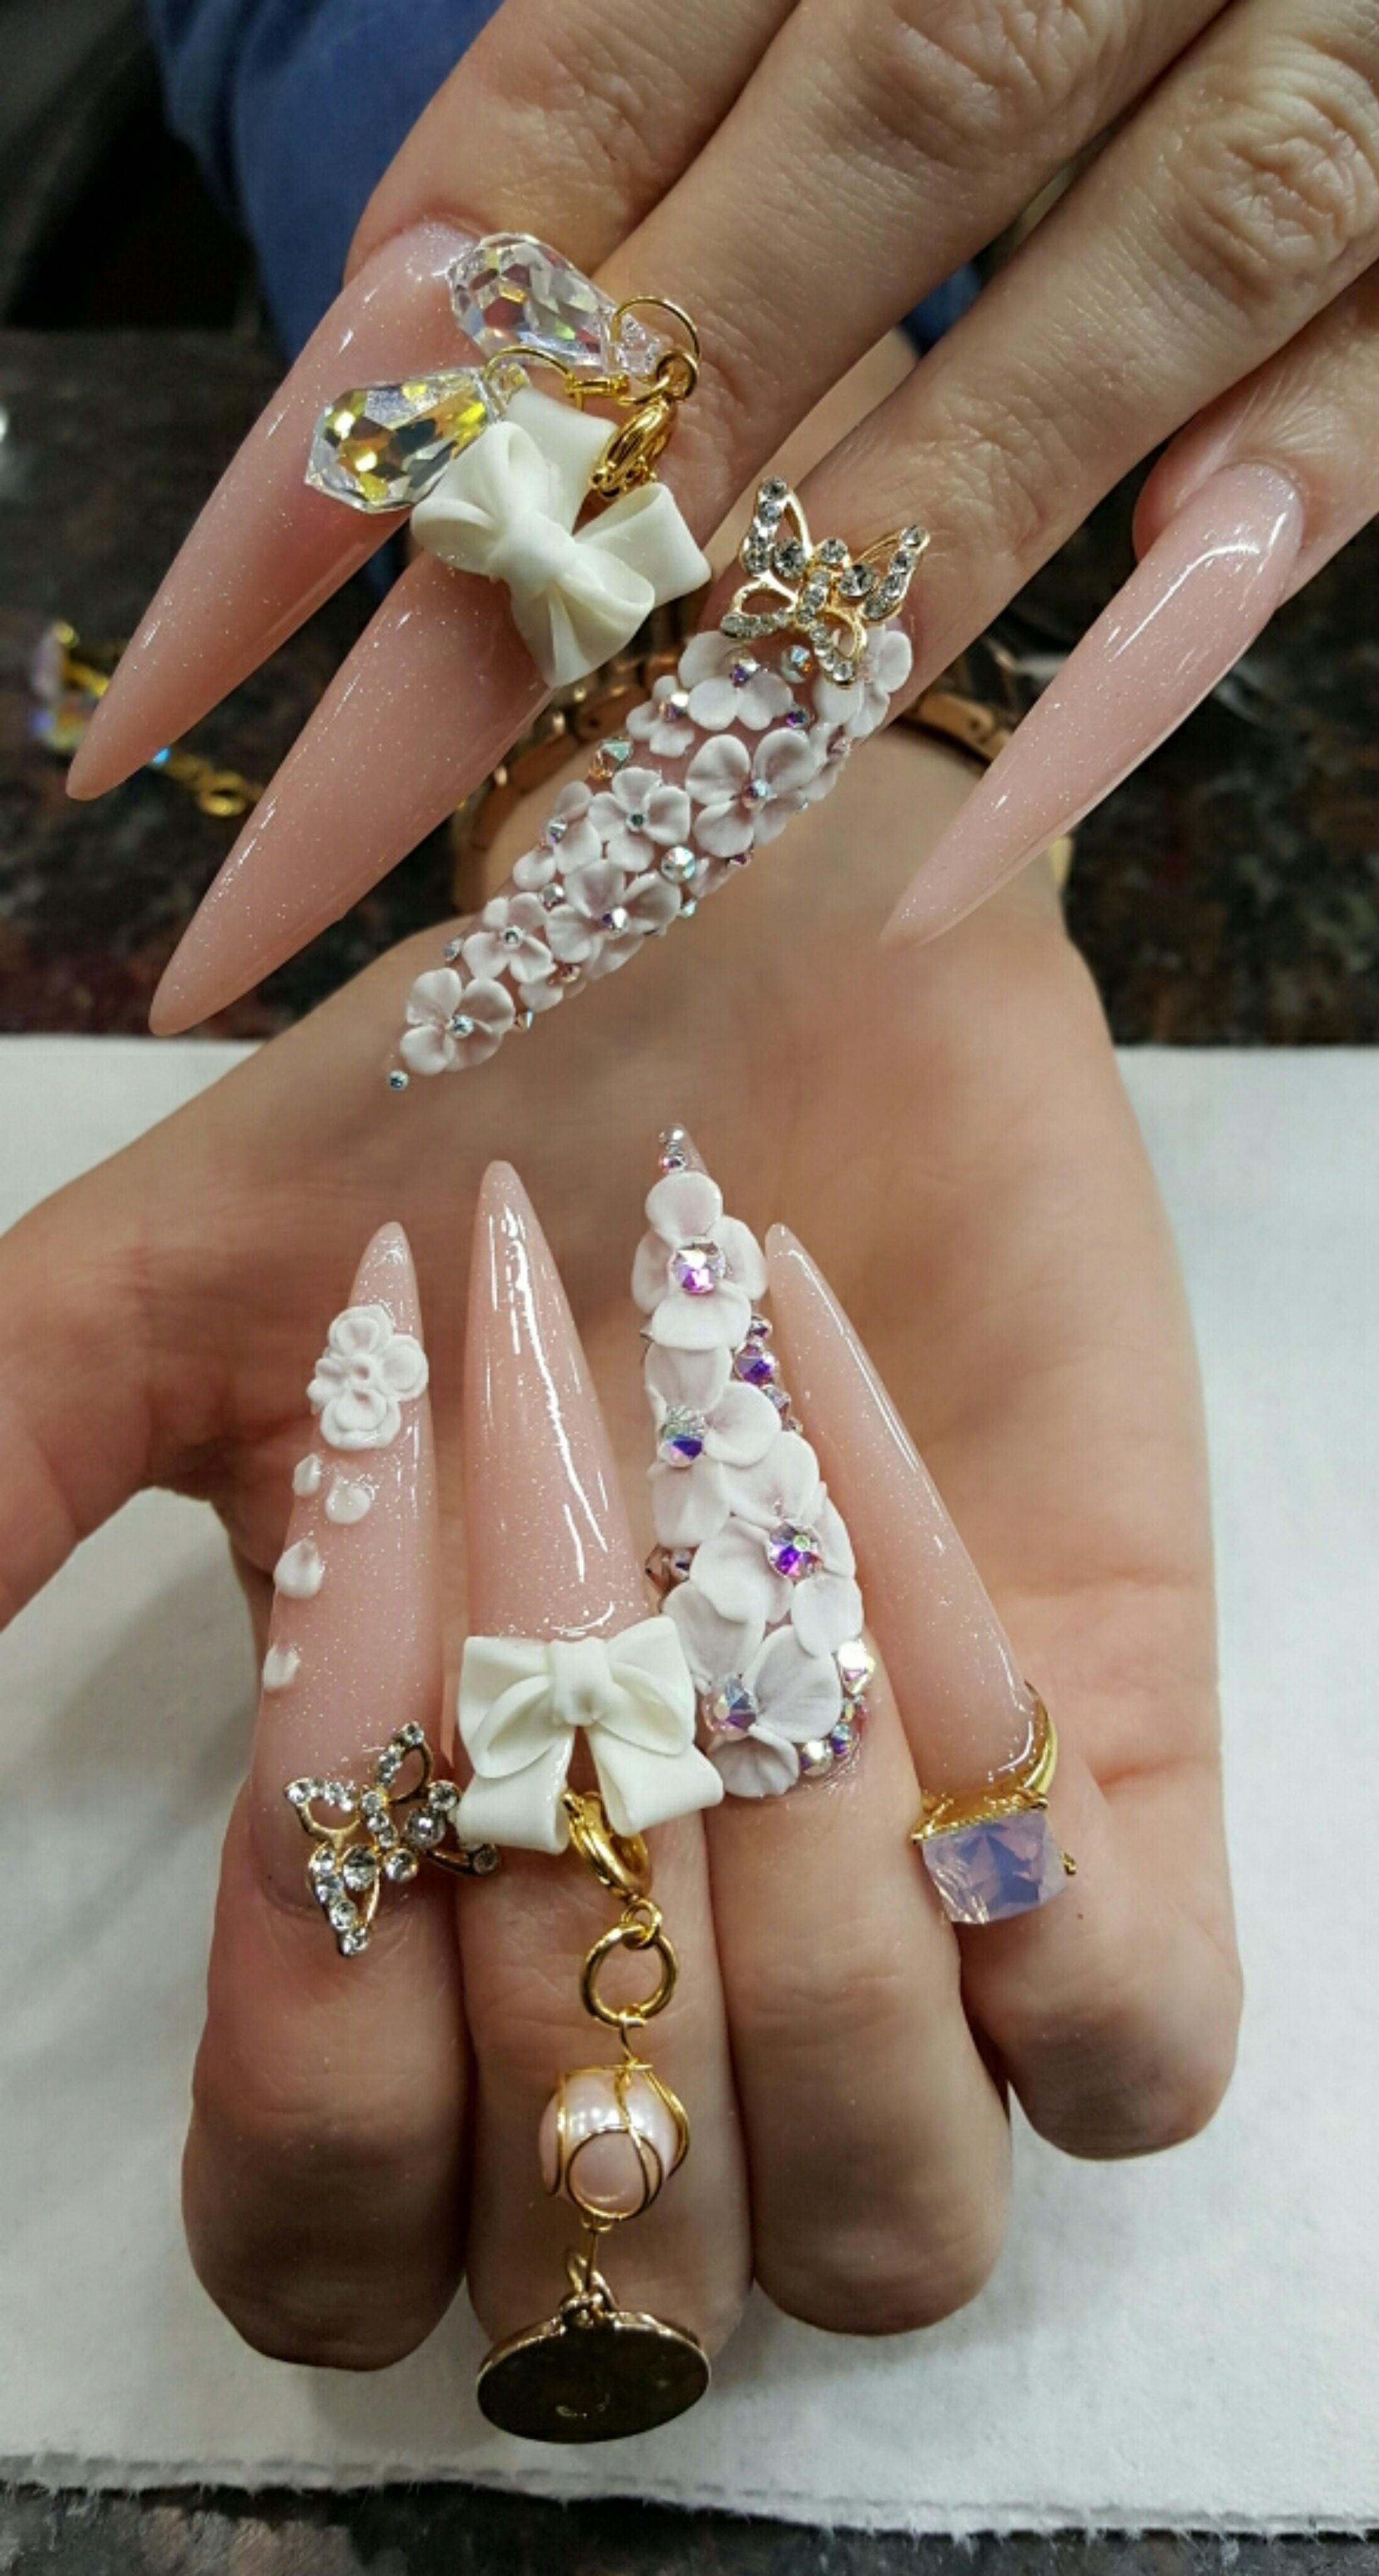 Flowers Diamonds And Bows Oh My Nailpro With Images Long